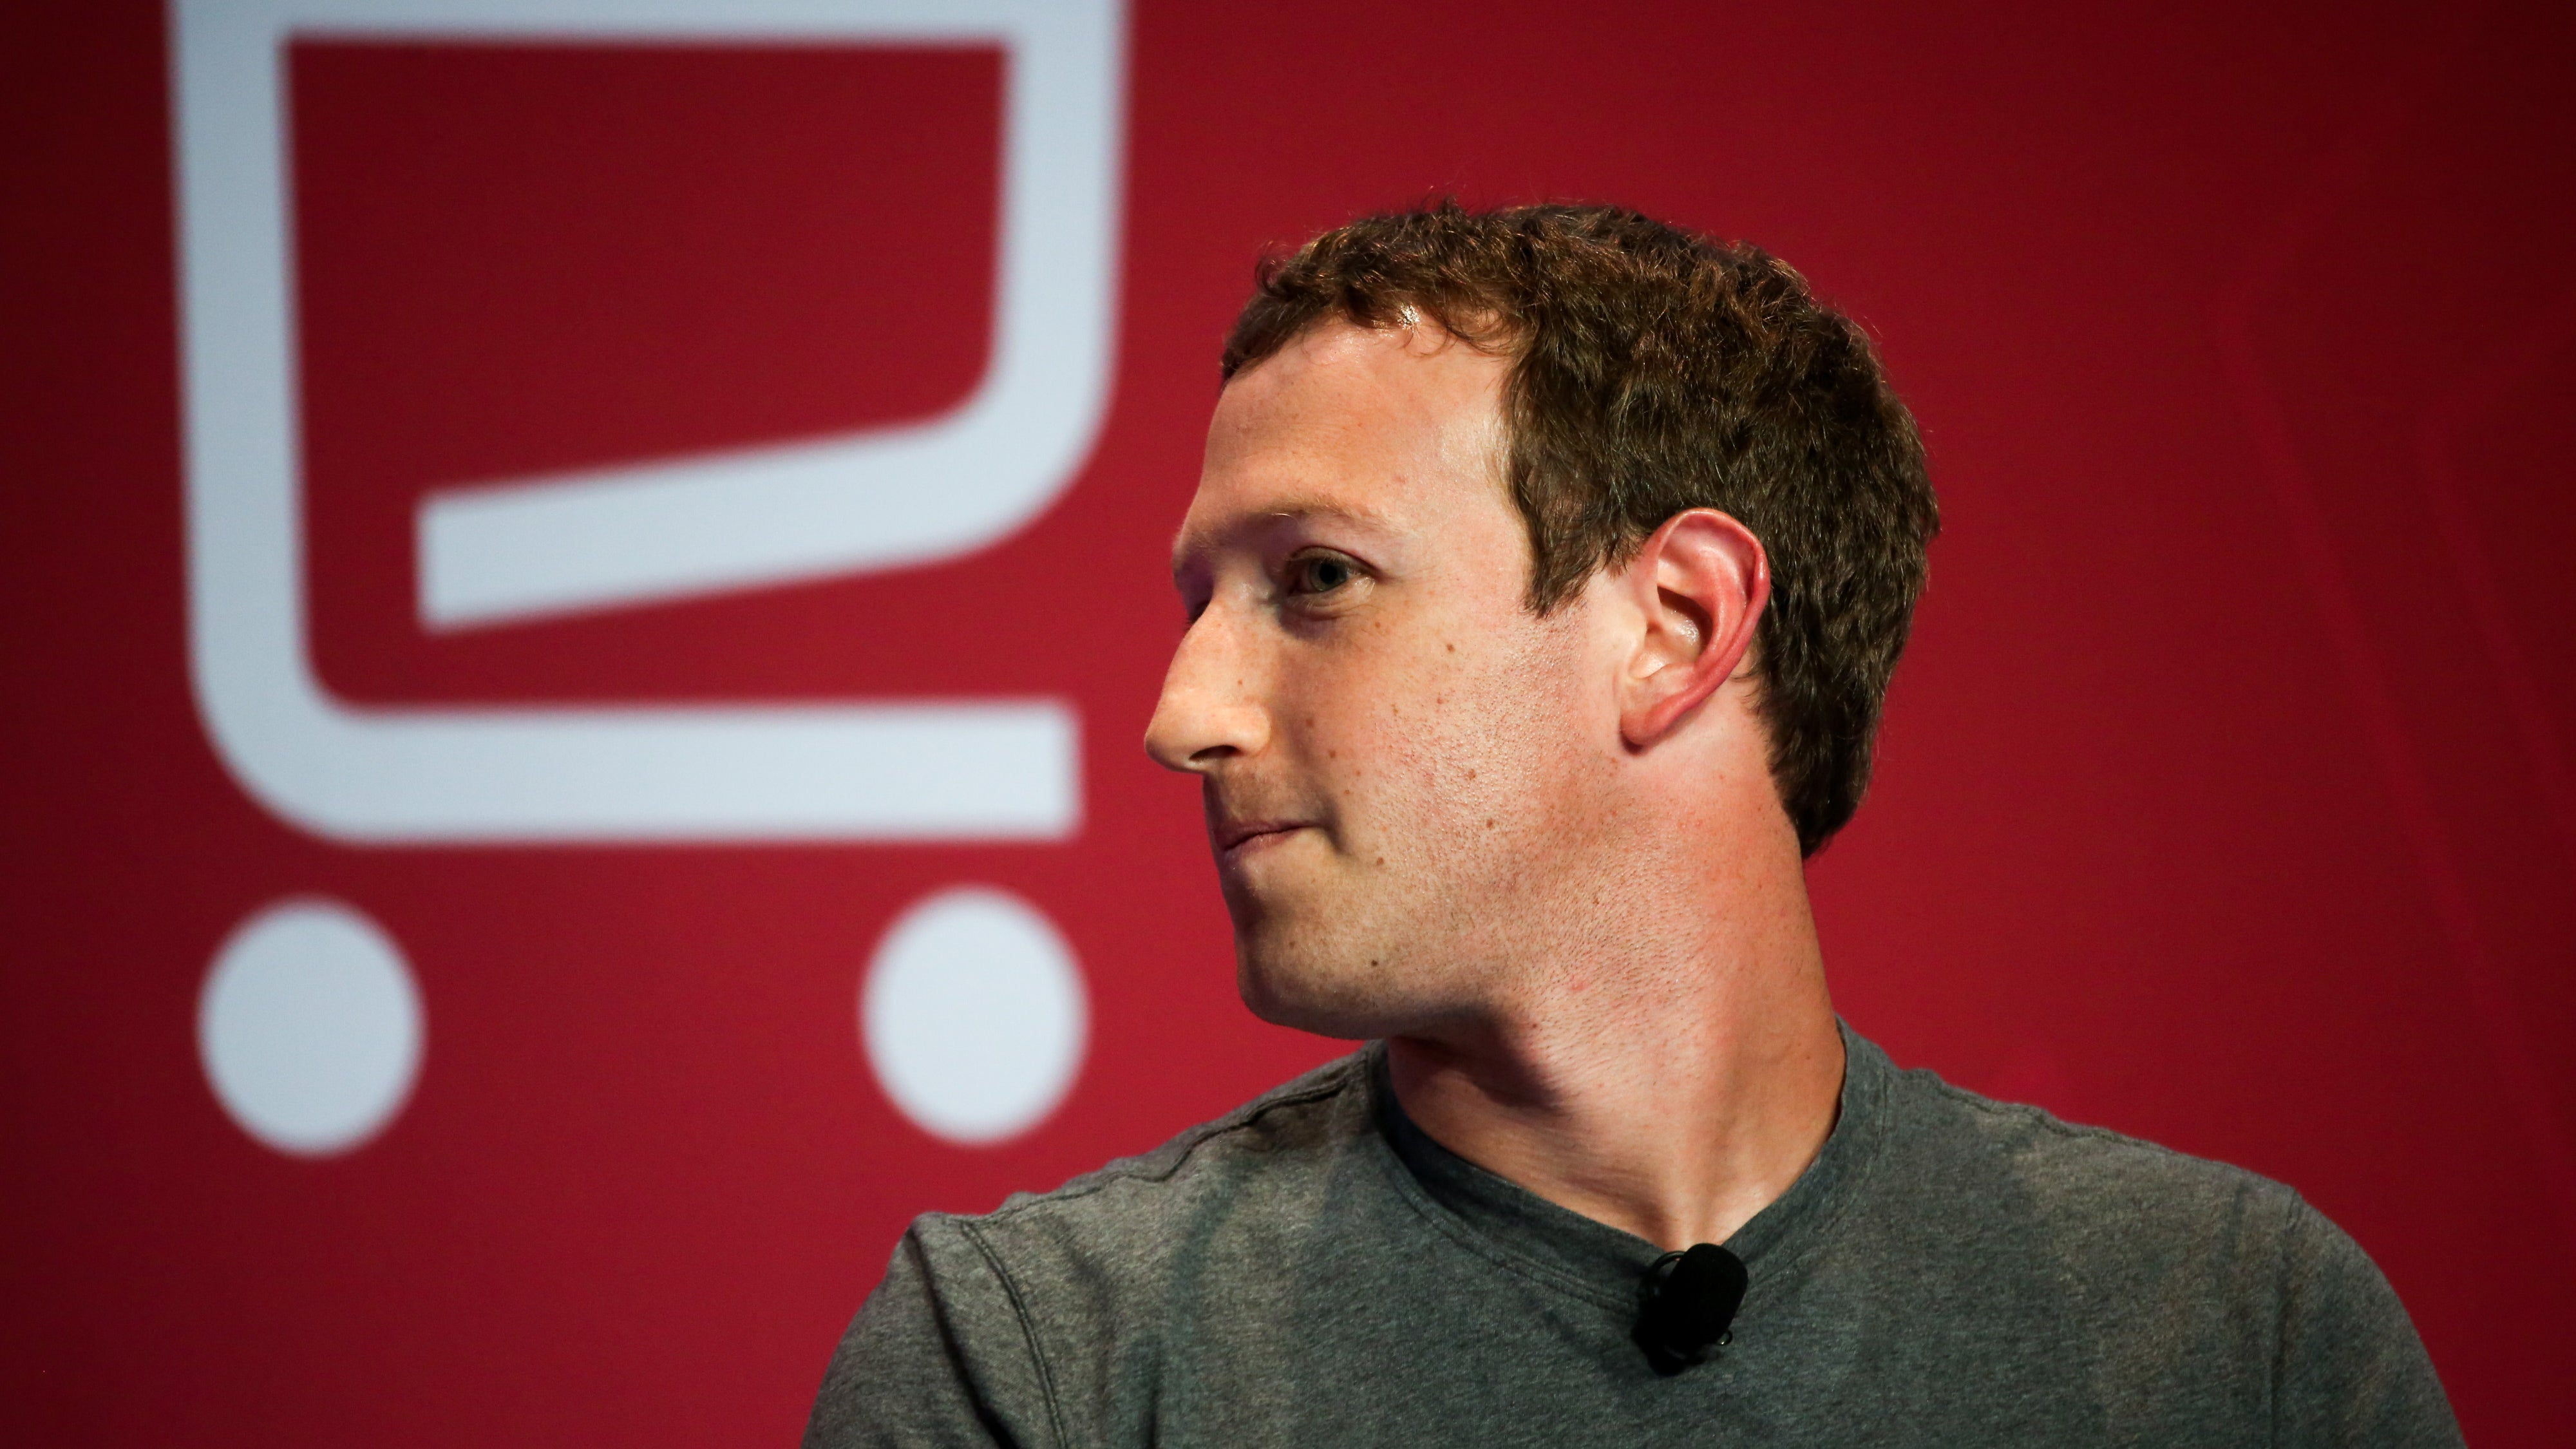 Working At Facebook Sounds Like Joining A Cult